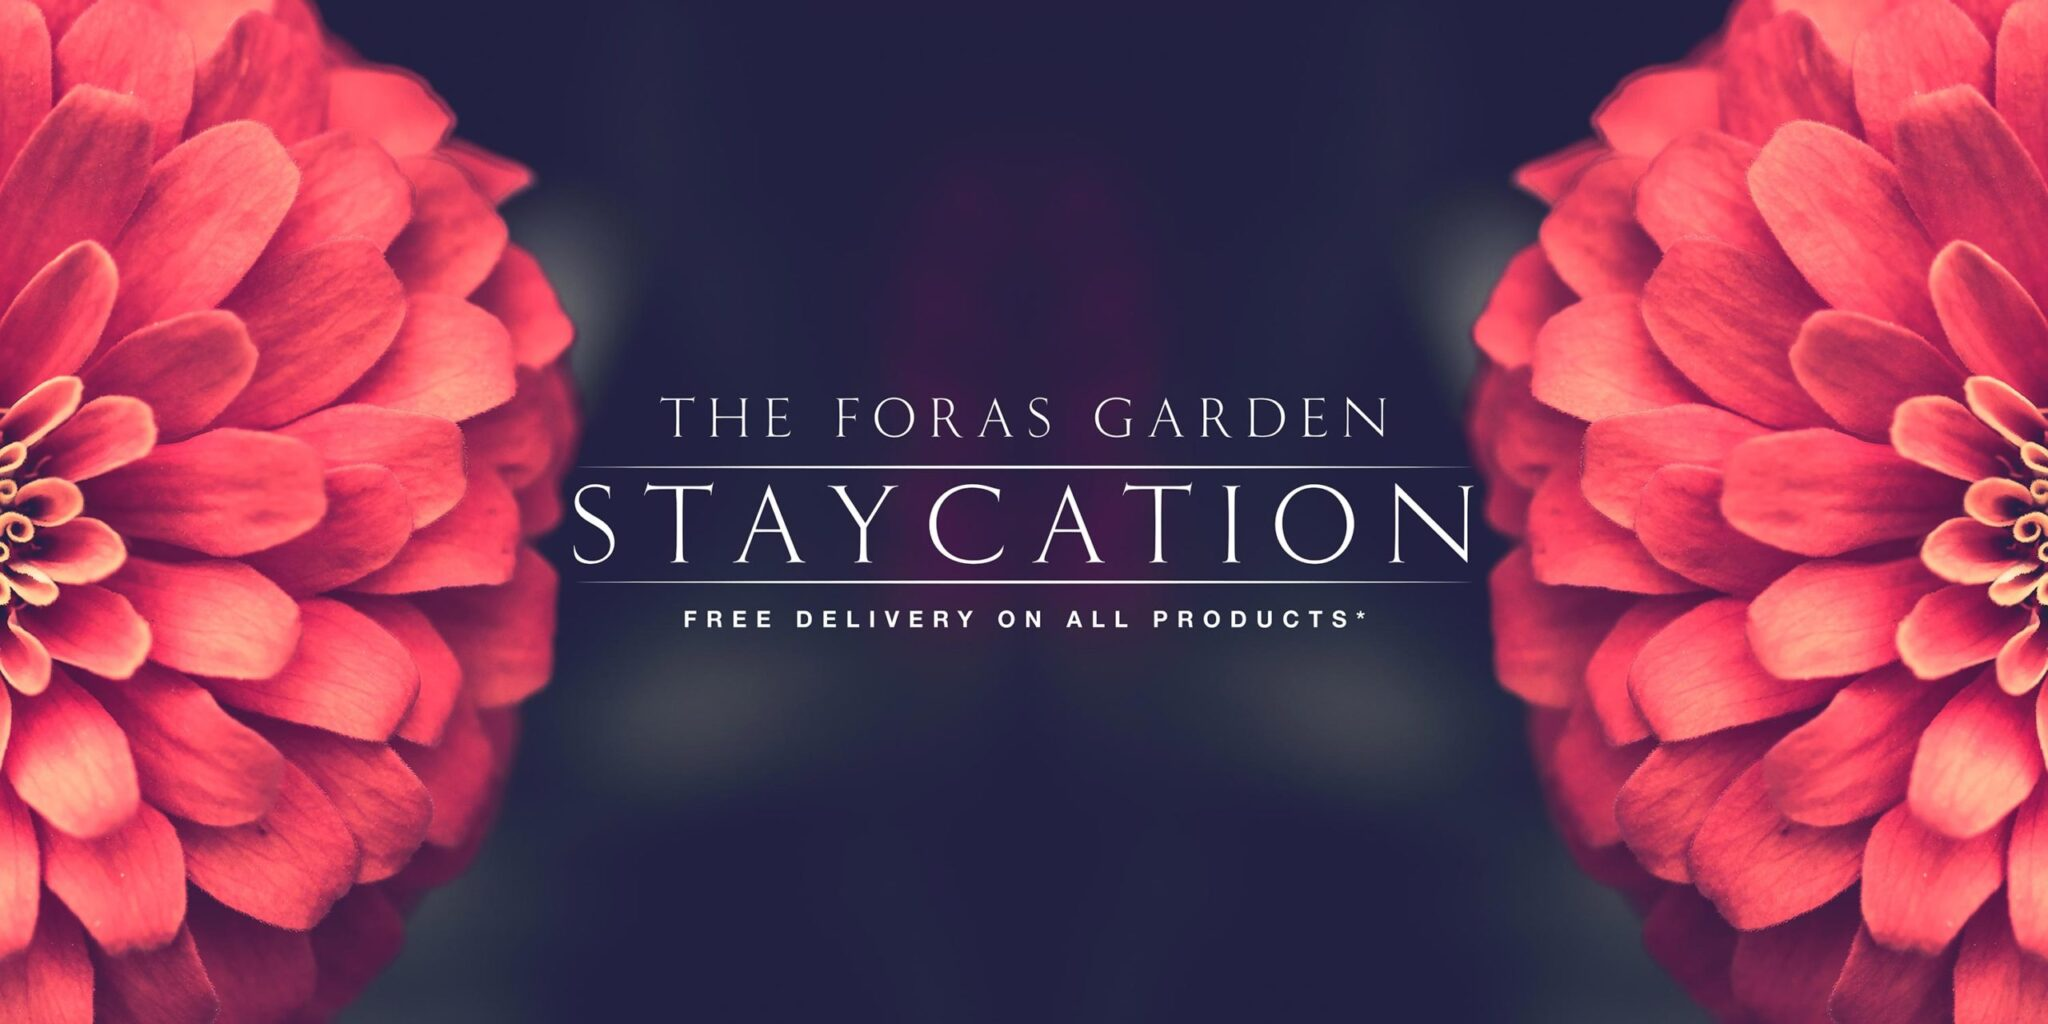 Foras Garden Staycation ART